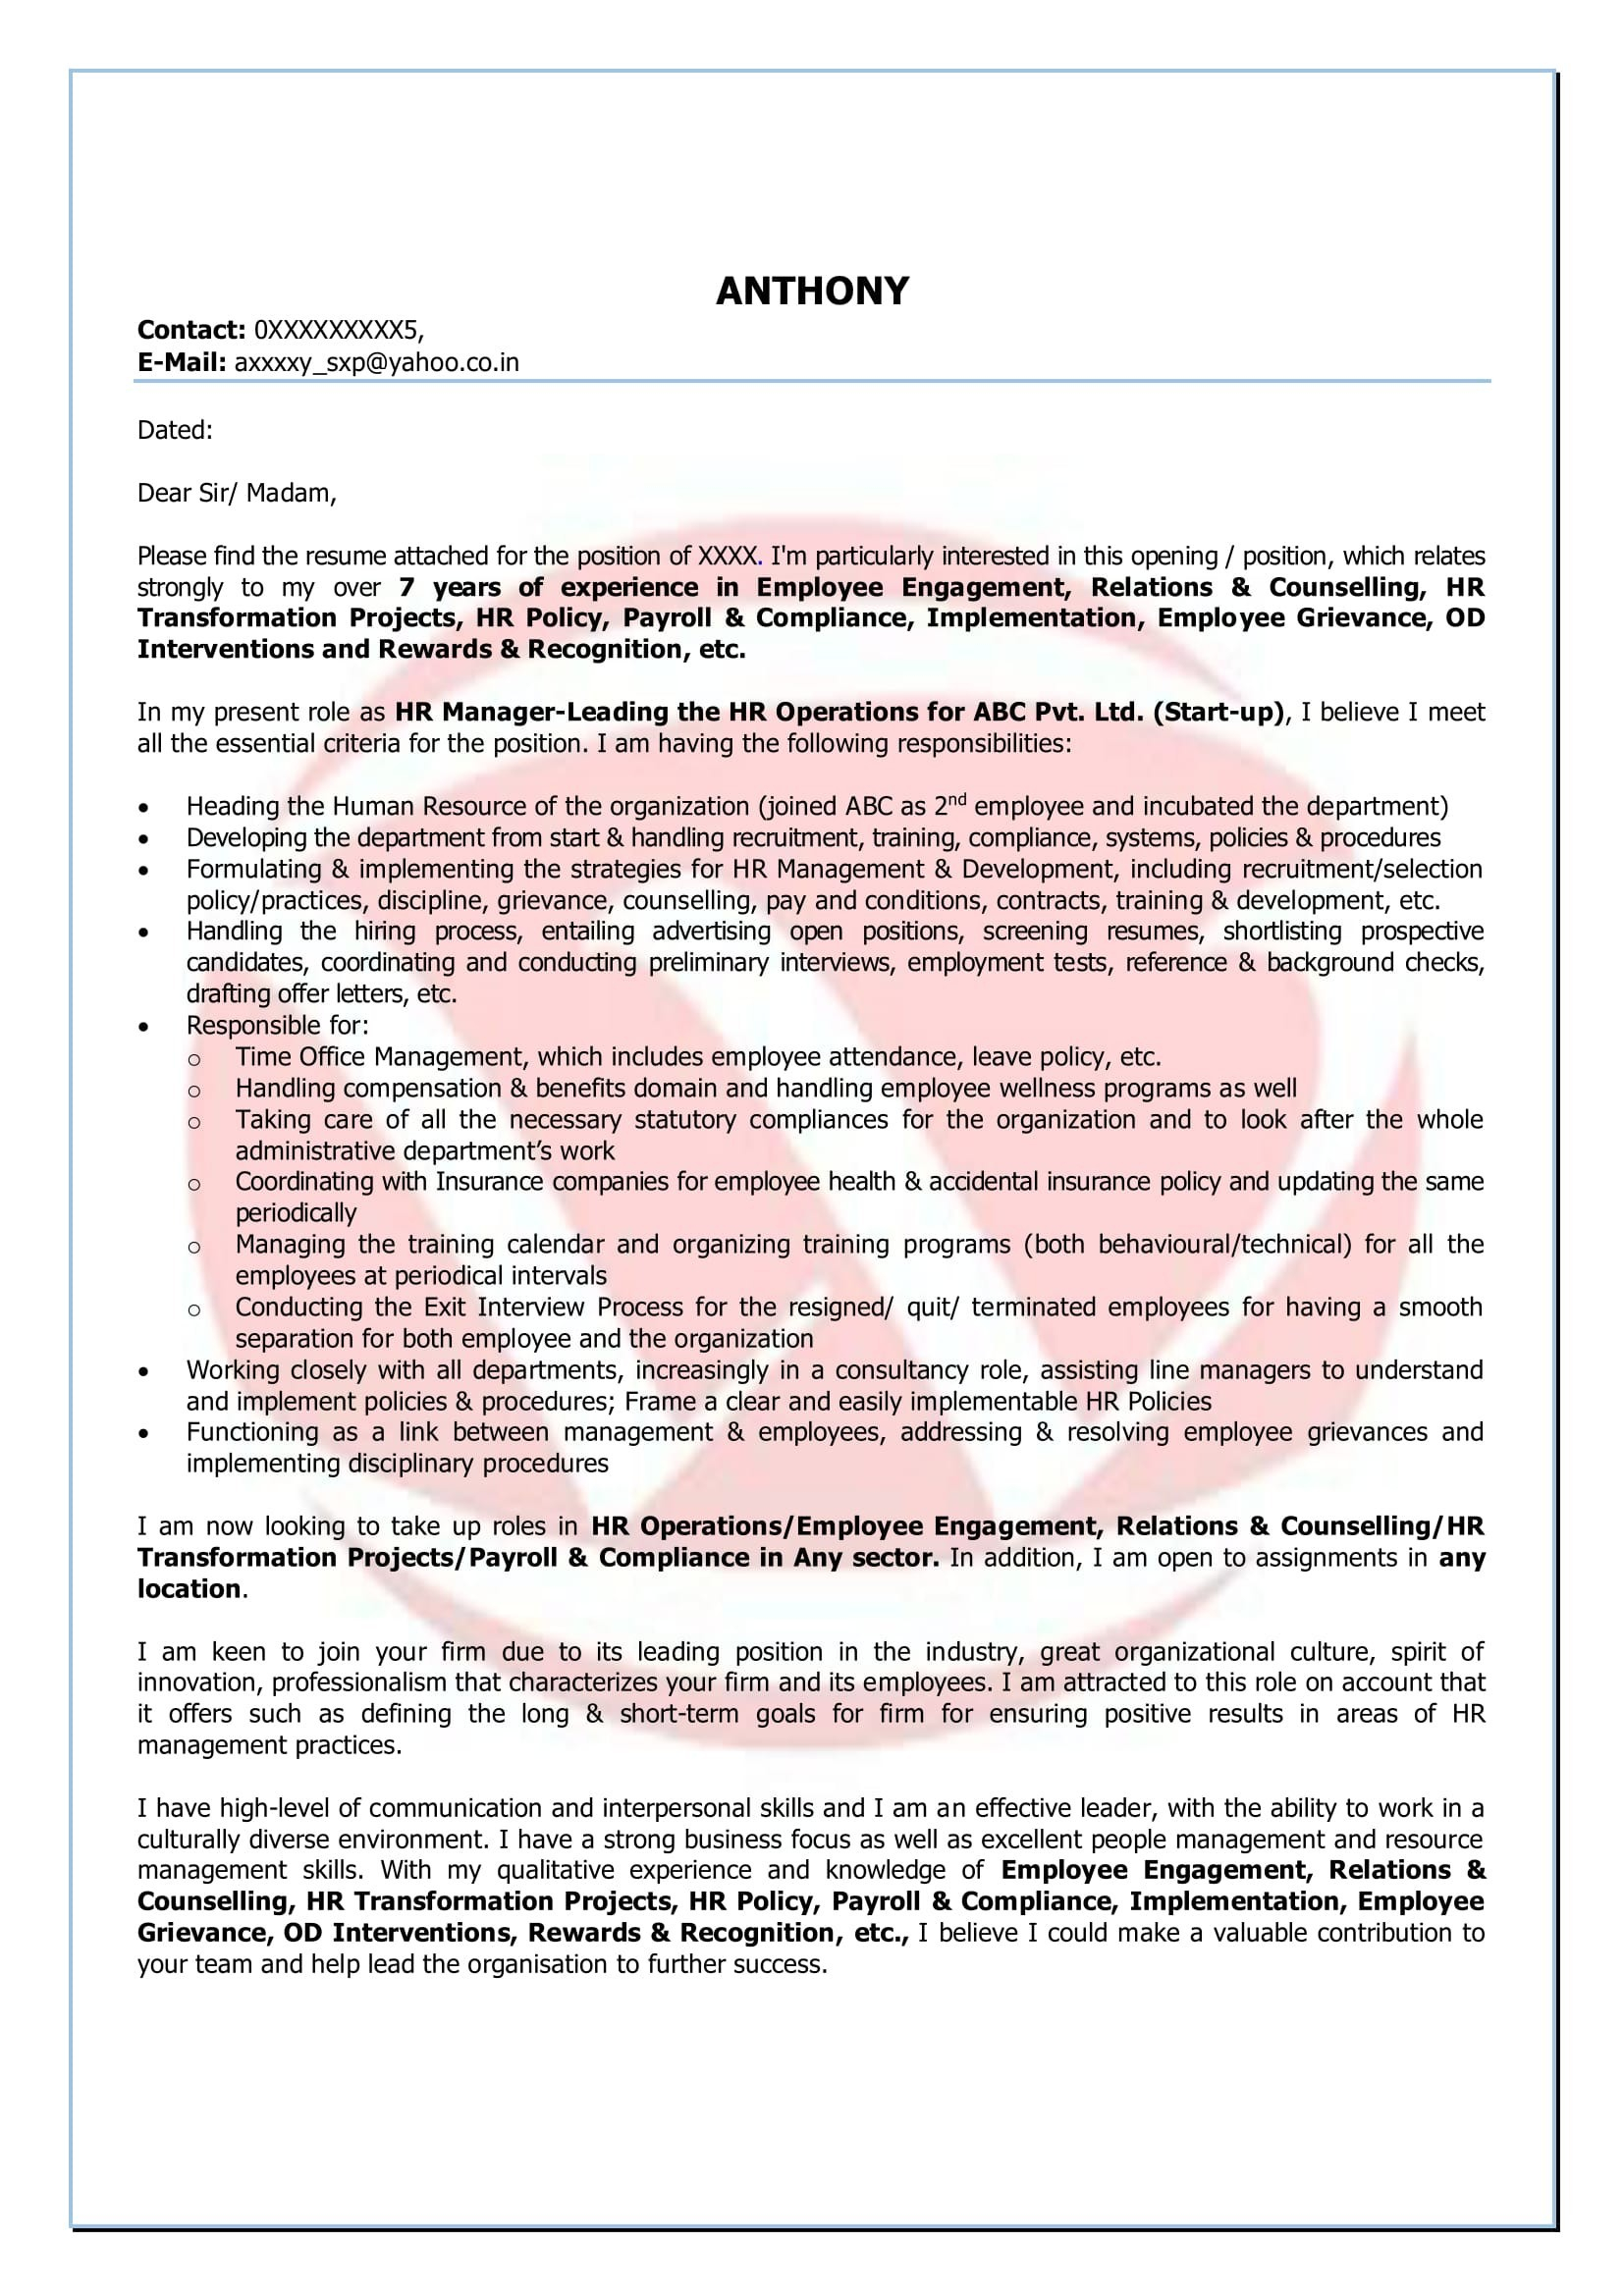 reach compliance letter template example-Reach Certificate pliance Sample Fresh Temp Reference Reach Certificate pliance Sample Fresh Template Experience Certificate Template Choice 4-e